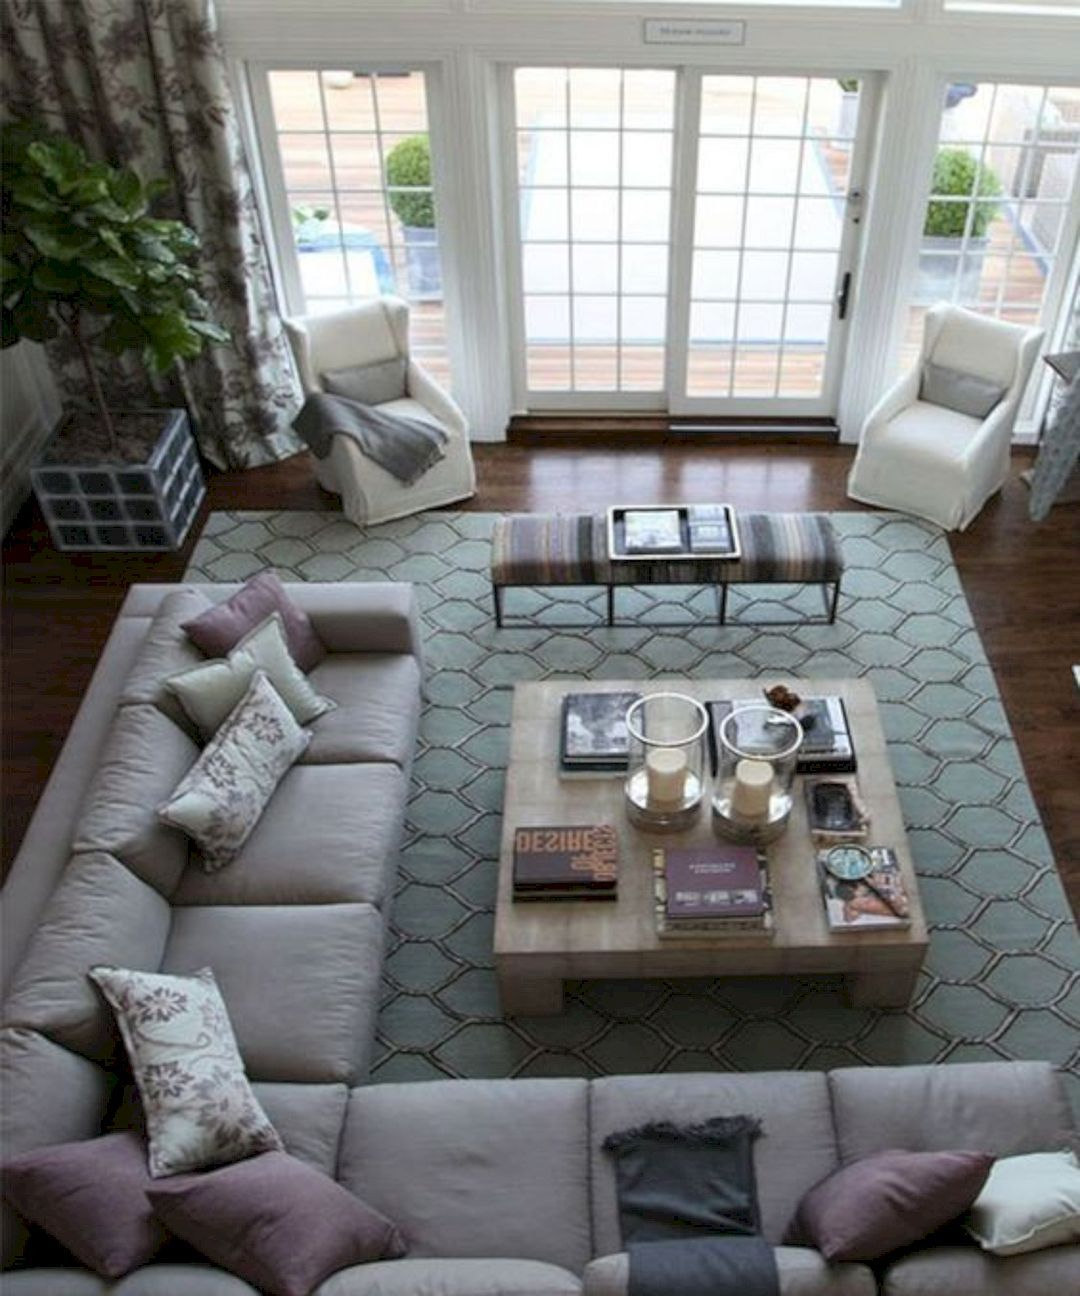 15 amazing furniture layout ideas to arrange your family on family picture wall ideas for living room furniture arrangements id=75048